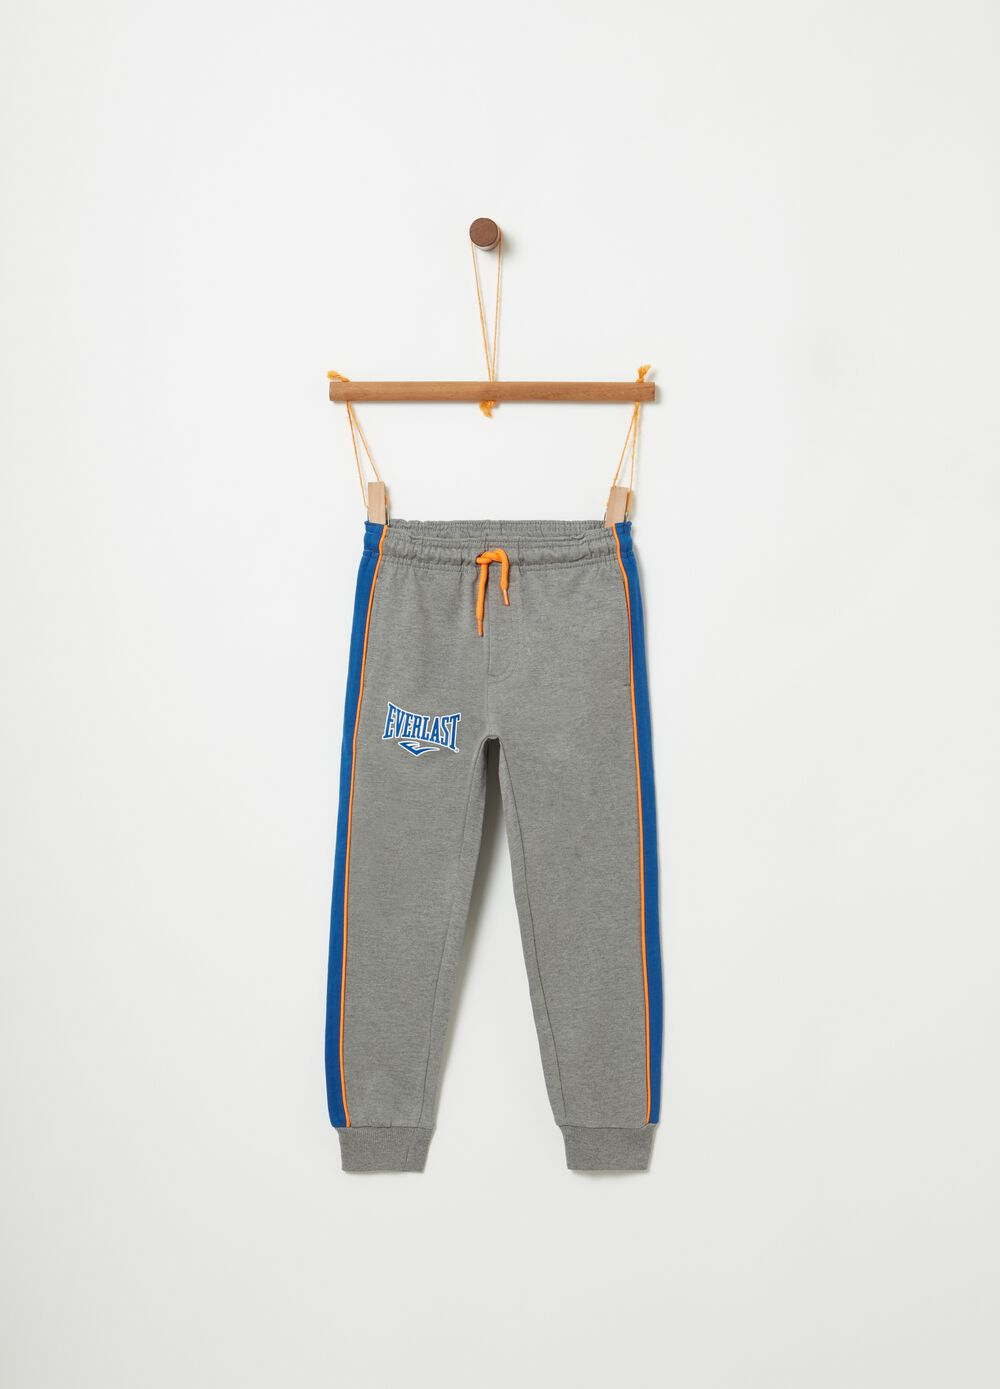 Two-tone trousers with Everlast print